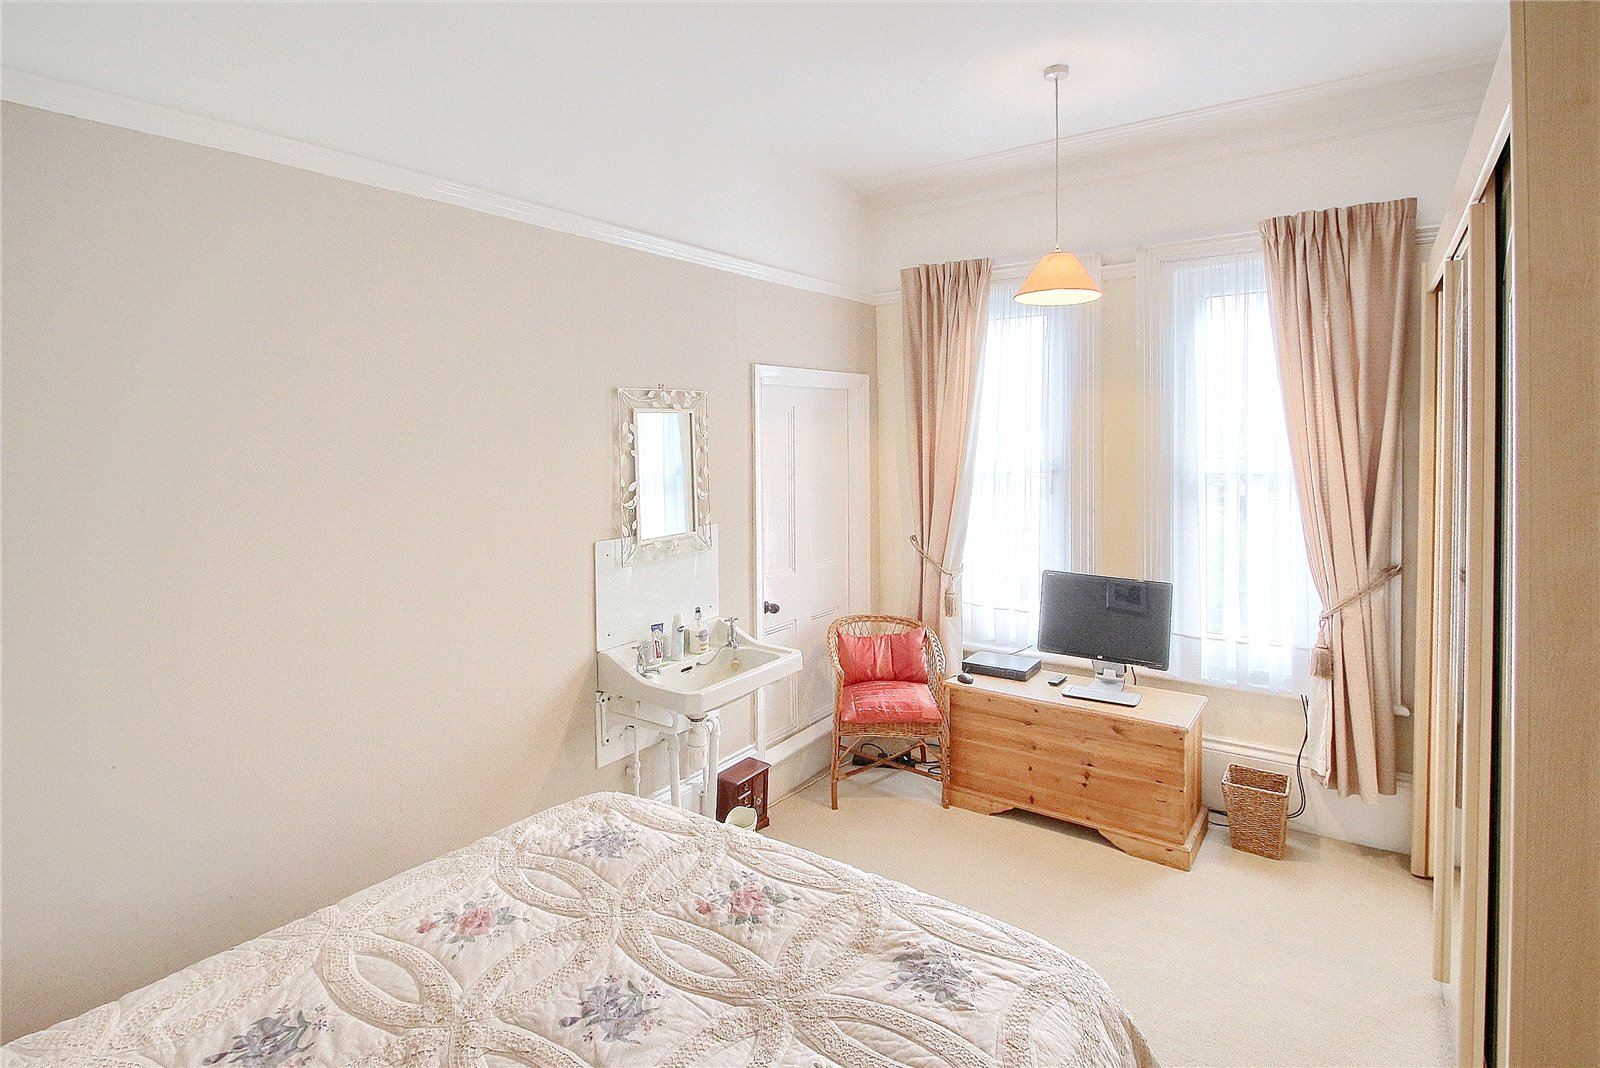 7 bed house for sale in Richmond Road, Stockton-on-Tees  - Property Image 13